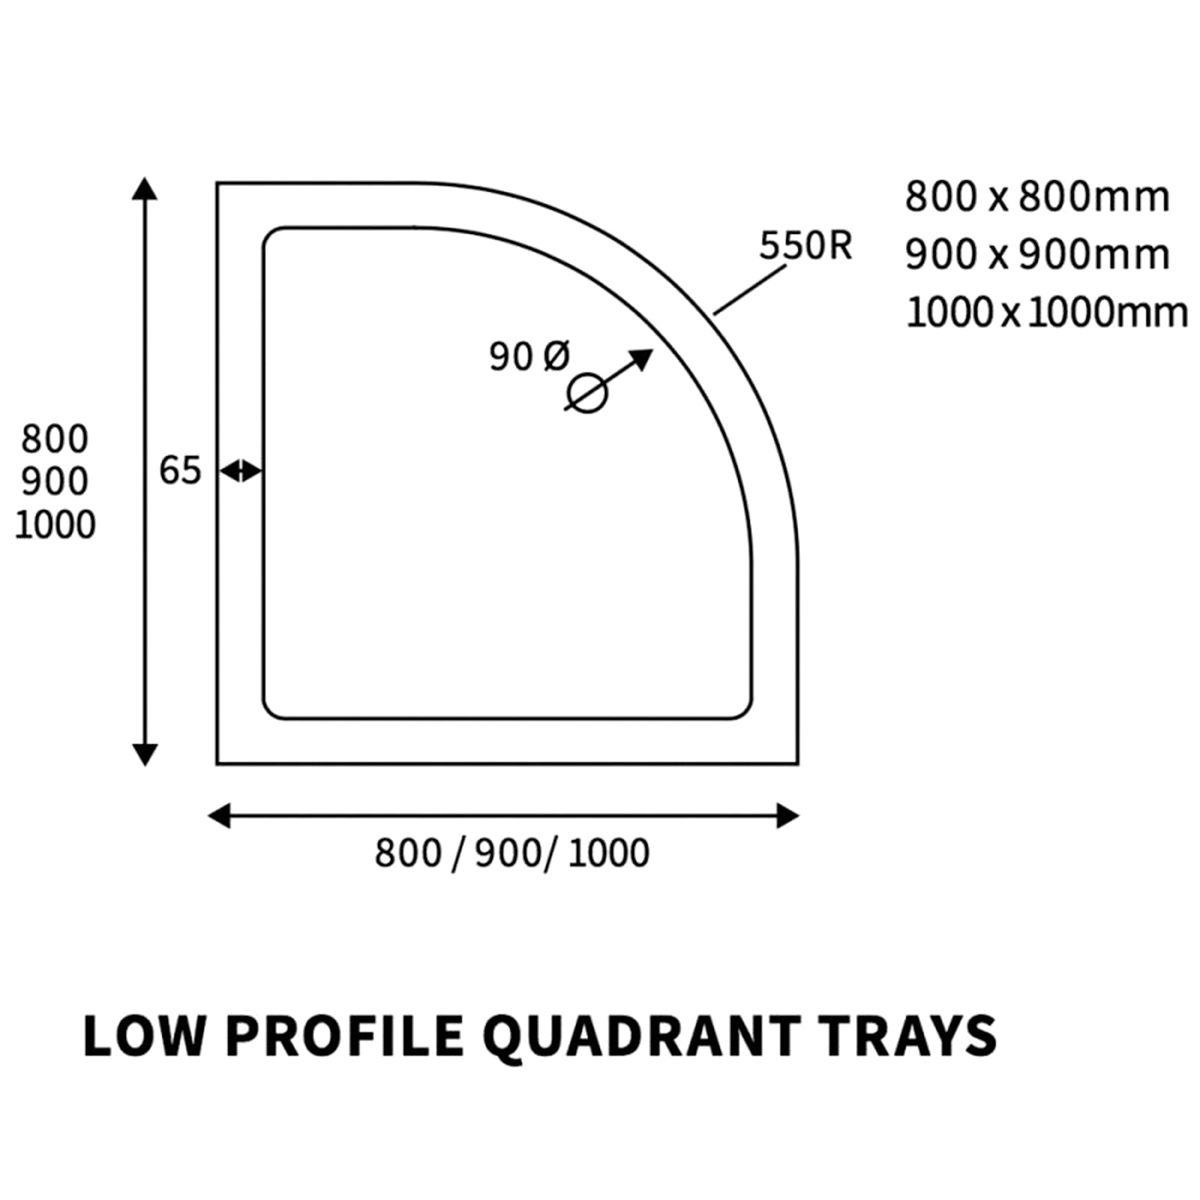 Bathrooms To Love Reflex Quadrant Low Profile Shower Tray with Waste 1000mm x 1000mm Line Drawing